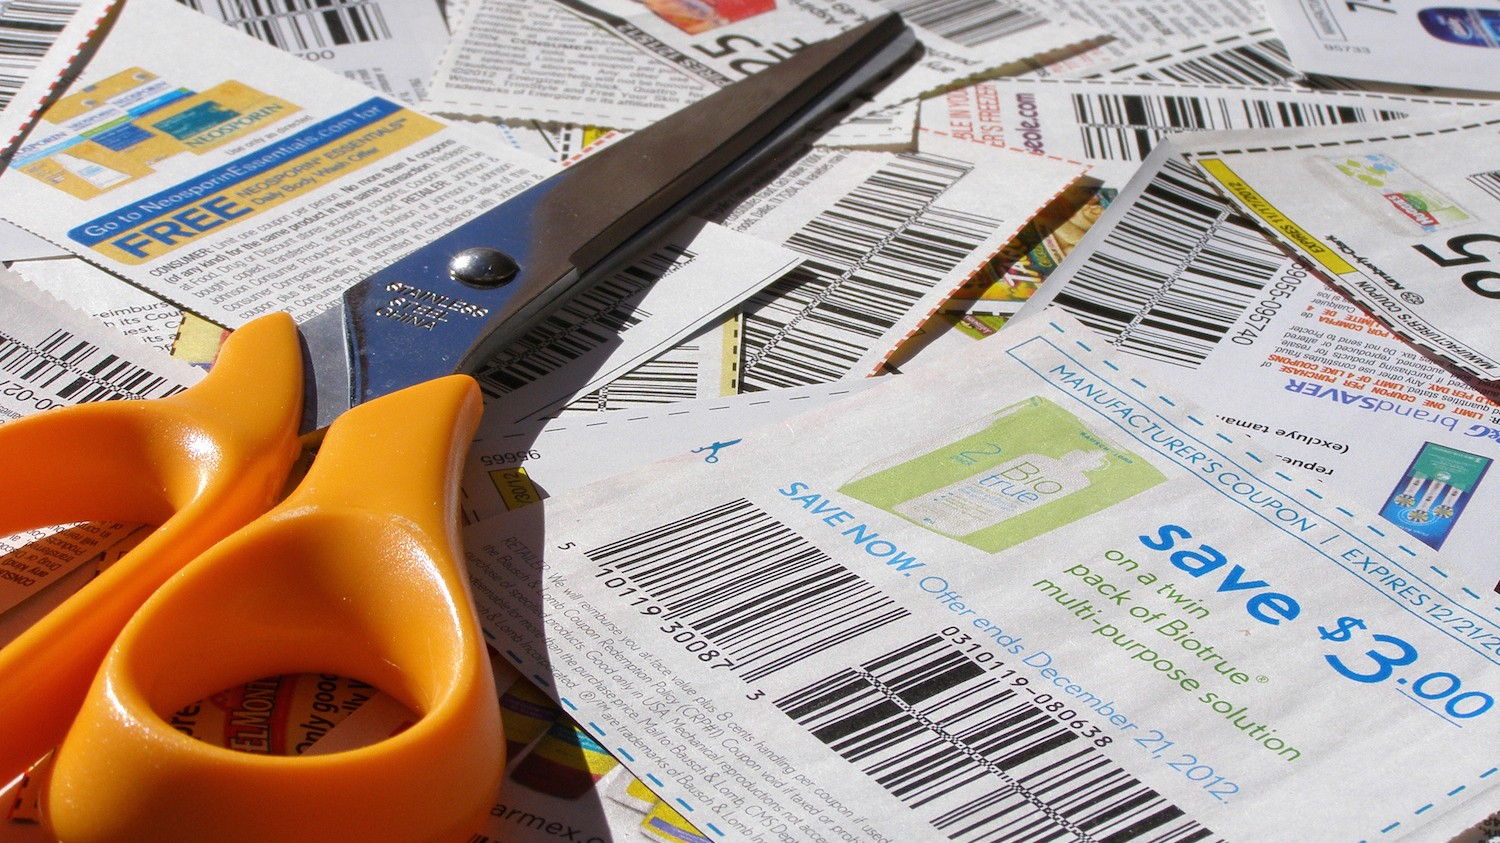 Dark Web Vendor Sentenced for Dealing Counterfeit Coupons